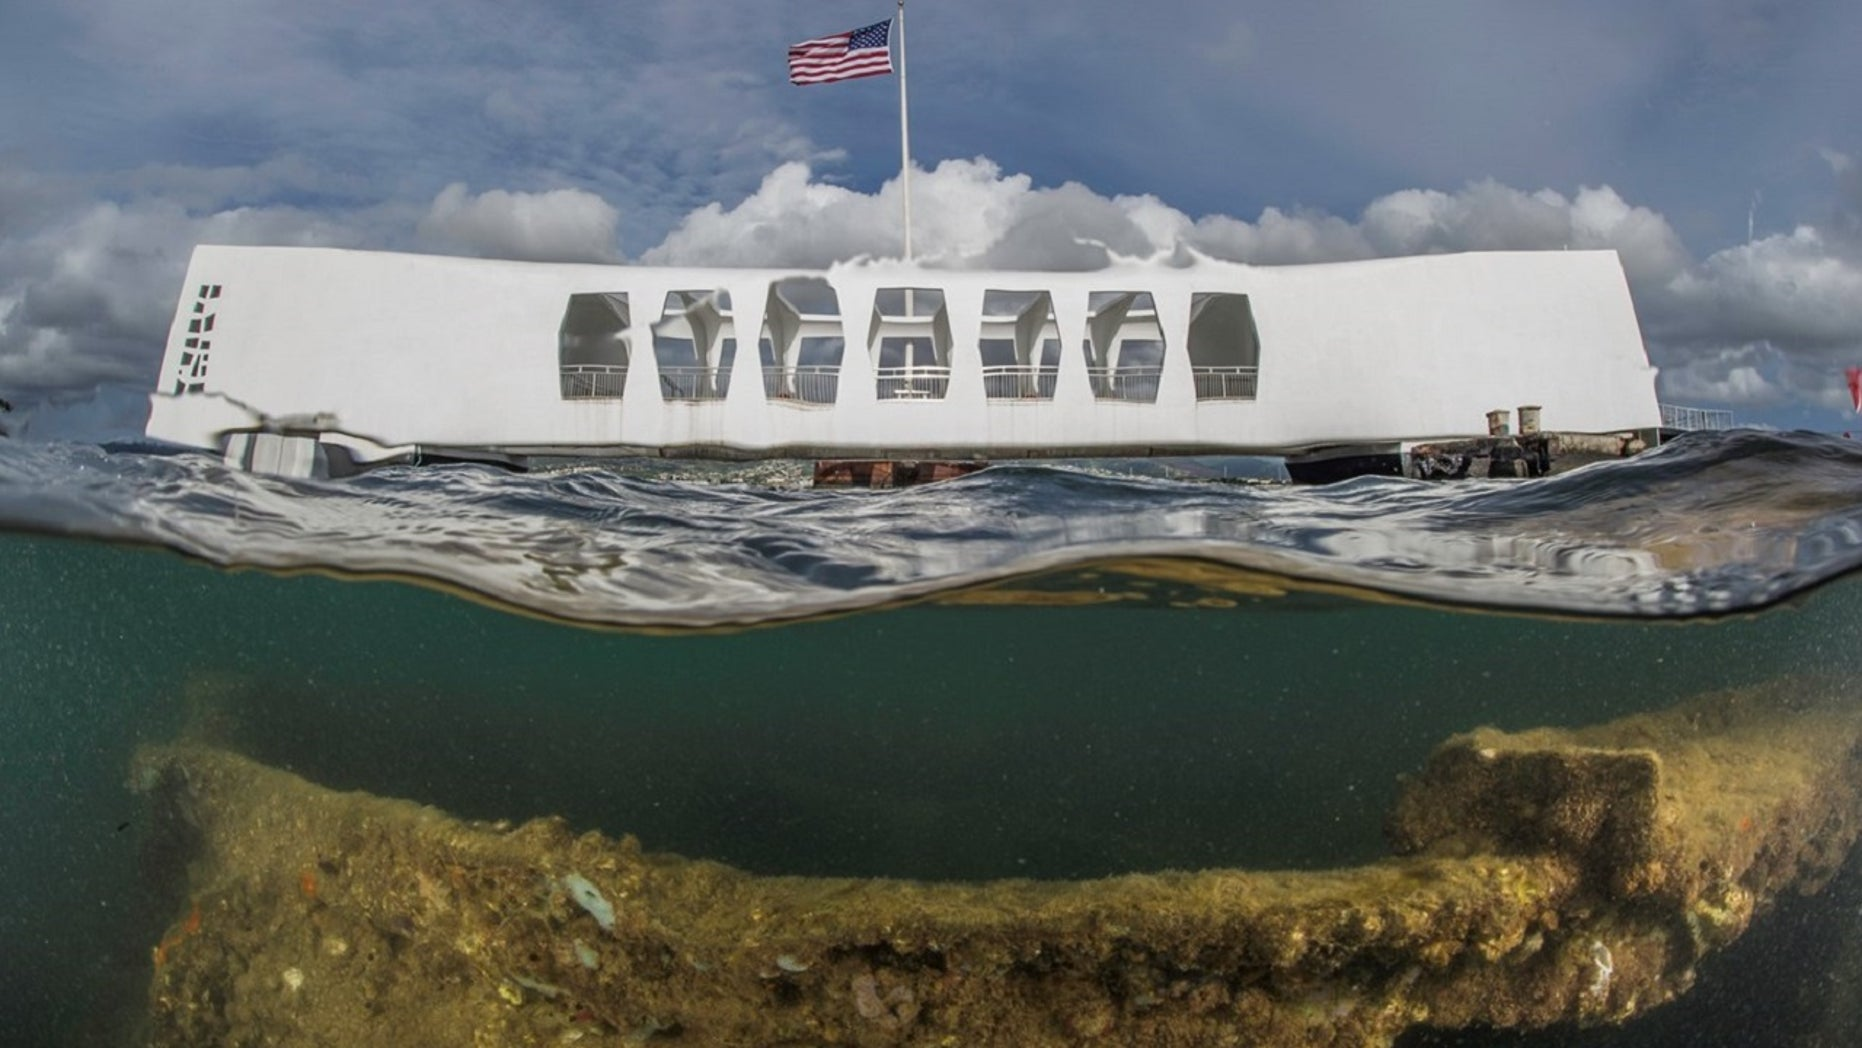 FILE: A view of the USS Arizona Memorial that shows the ship's wreckage.